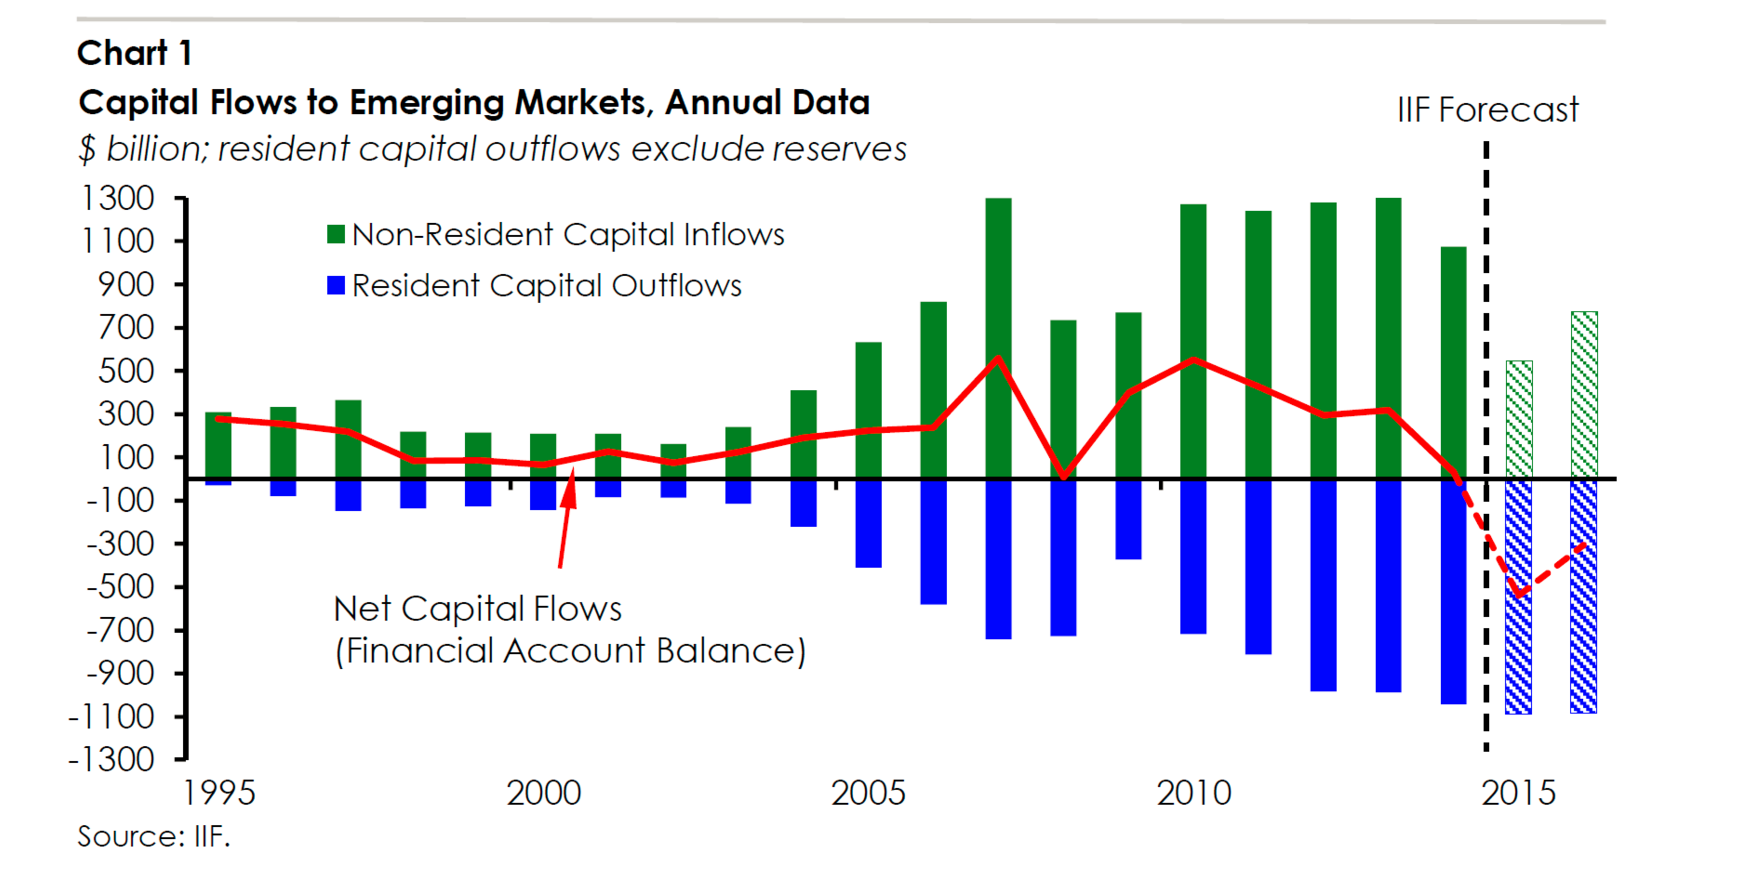 Capital Flows to Emerging Markets, Annual Data Source: IFF